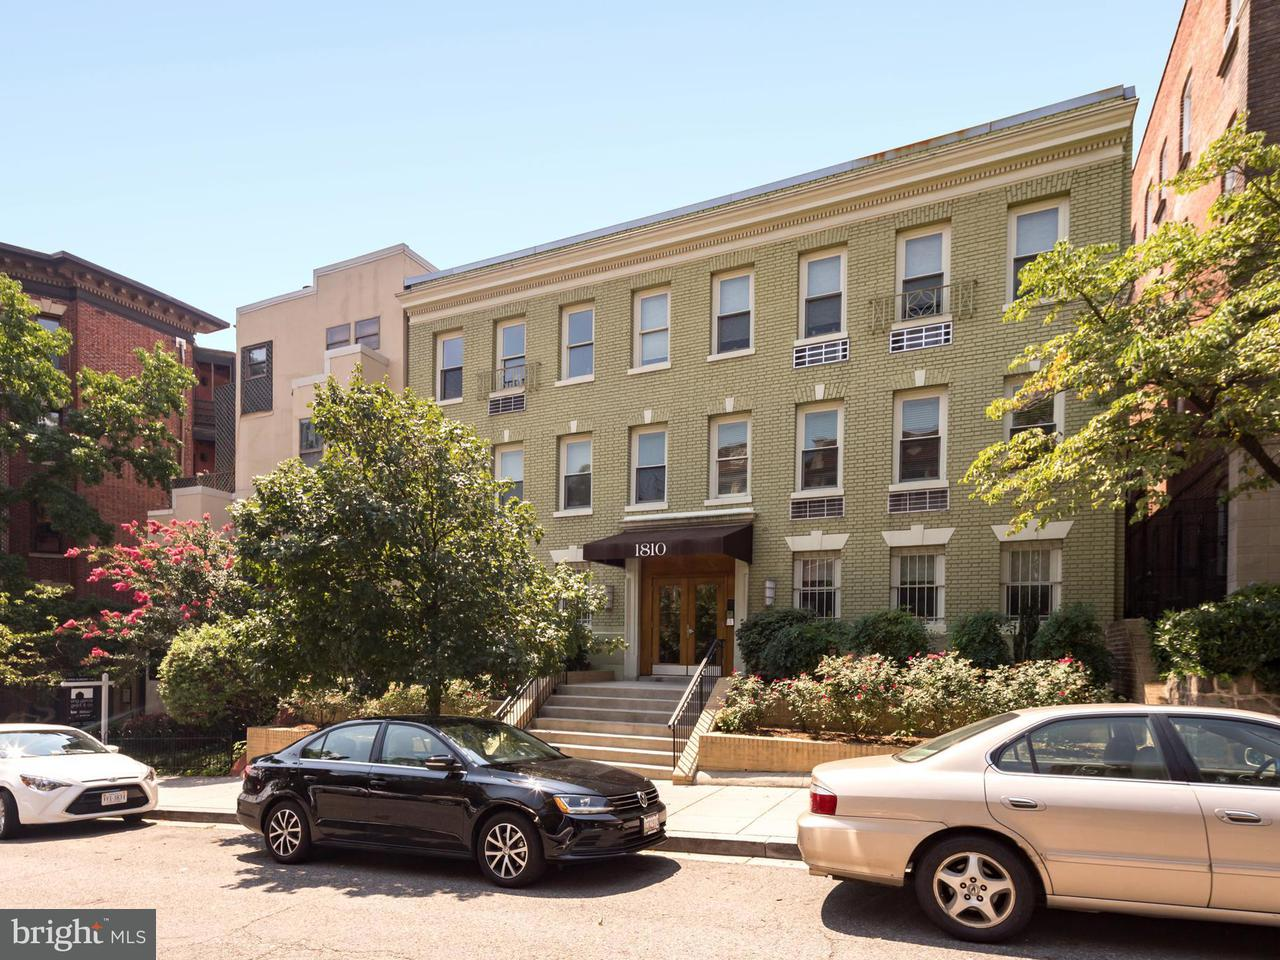 Condominium for Sale at 1810 California St NW #304 Washington, District Of Columbia 20009 United States